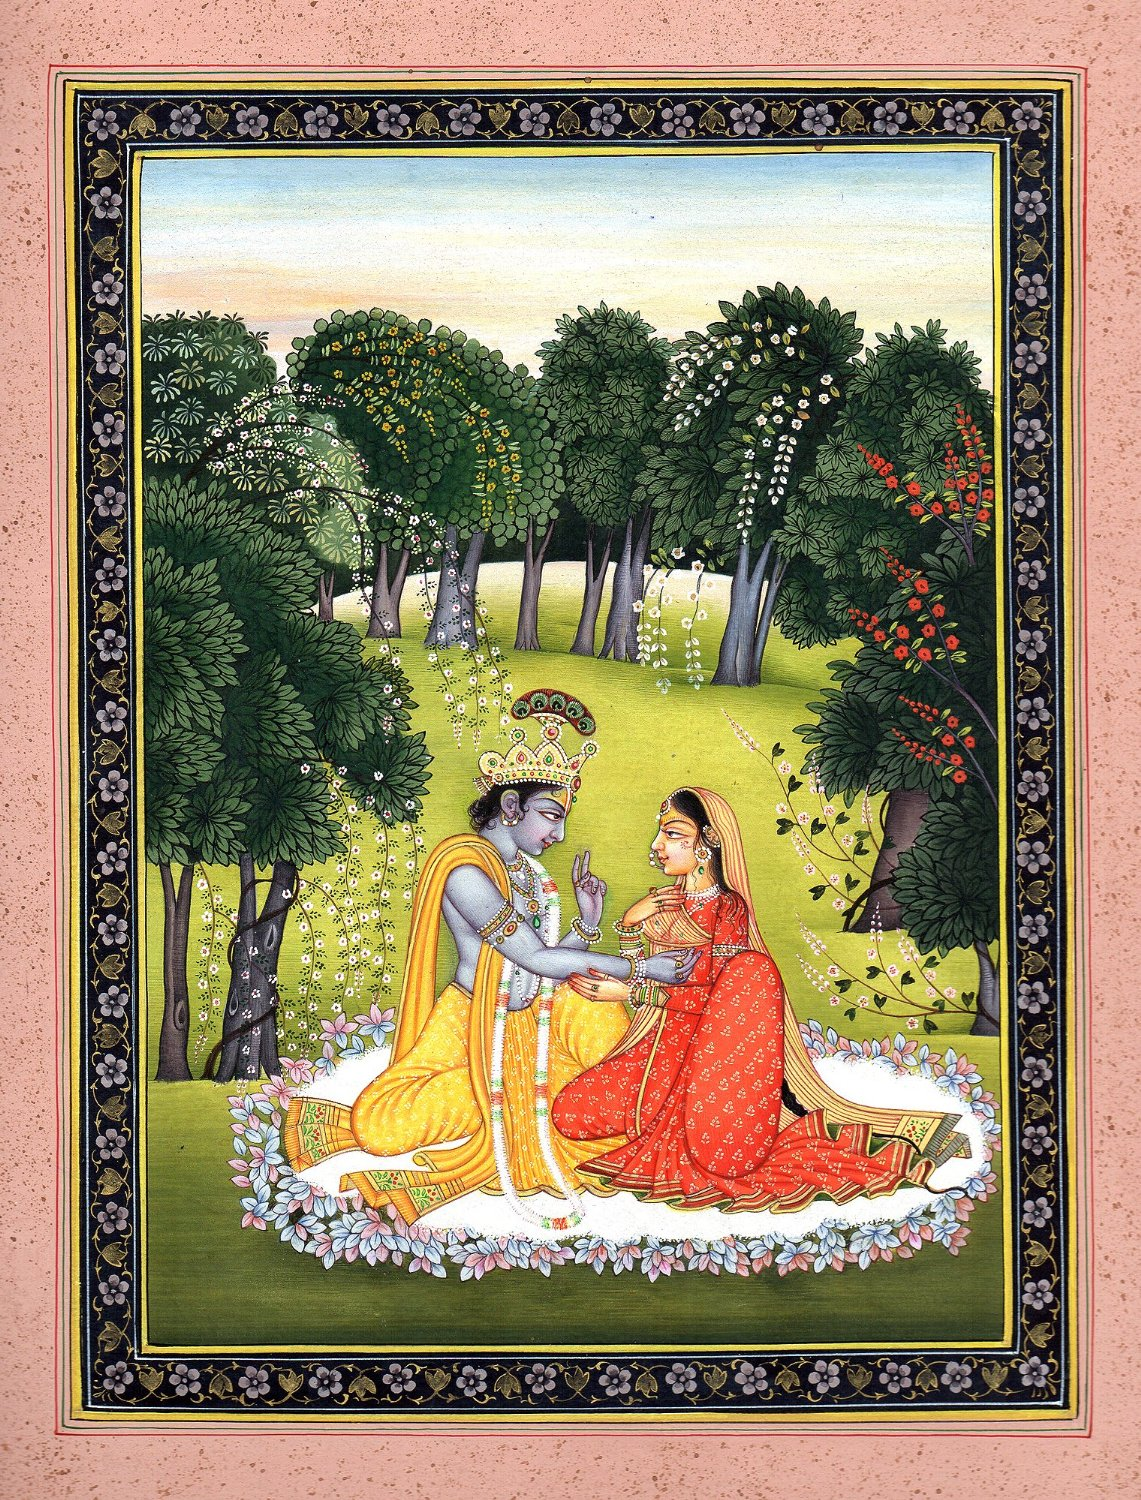 Krishna Appeasing Radha for Not Coming on Time - Water Color Painting on Paper - Artist:Kailash Raj